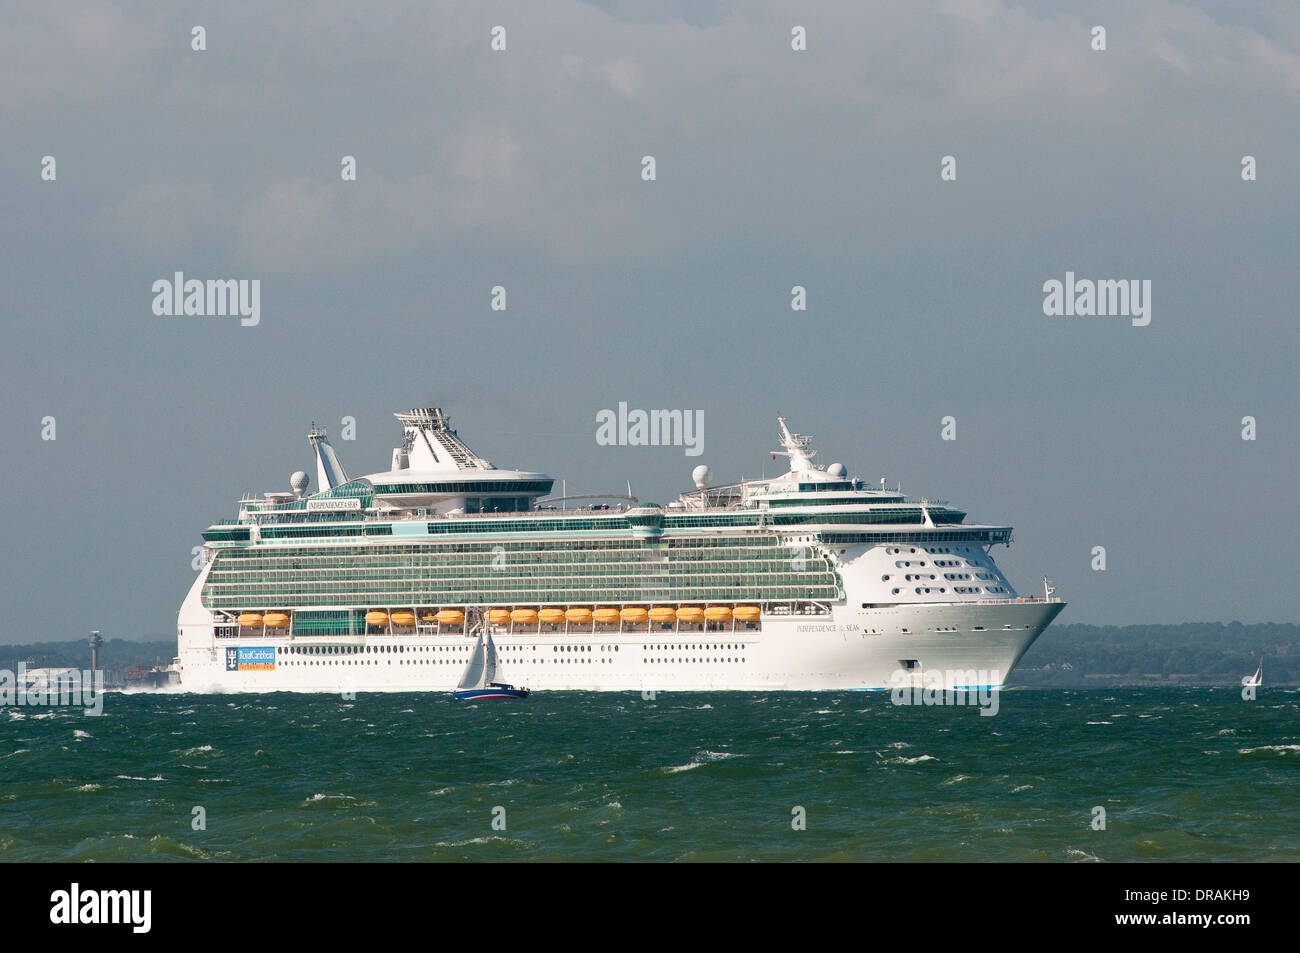 Royal Caribbean 'Independence of the seas' cruise ship leaving Southampton, England. - Stock Image